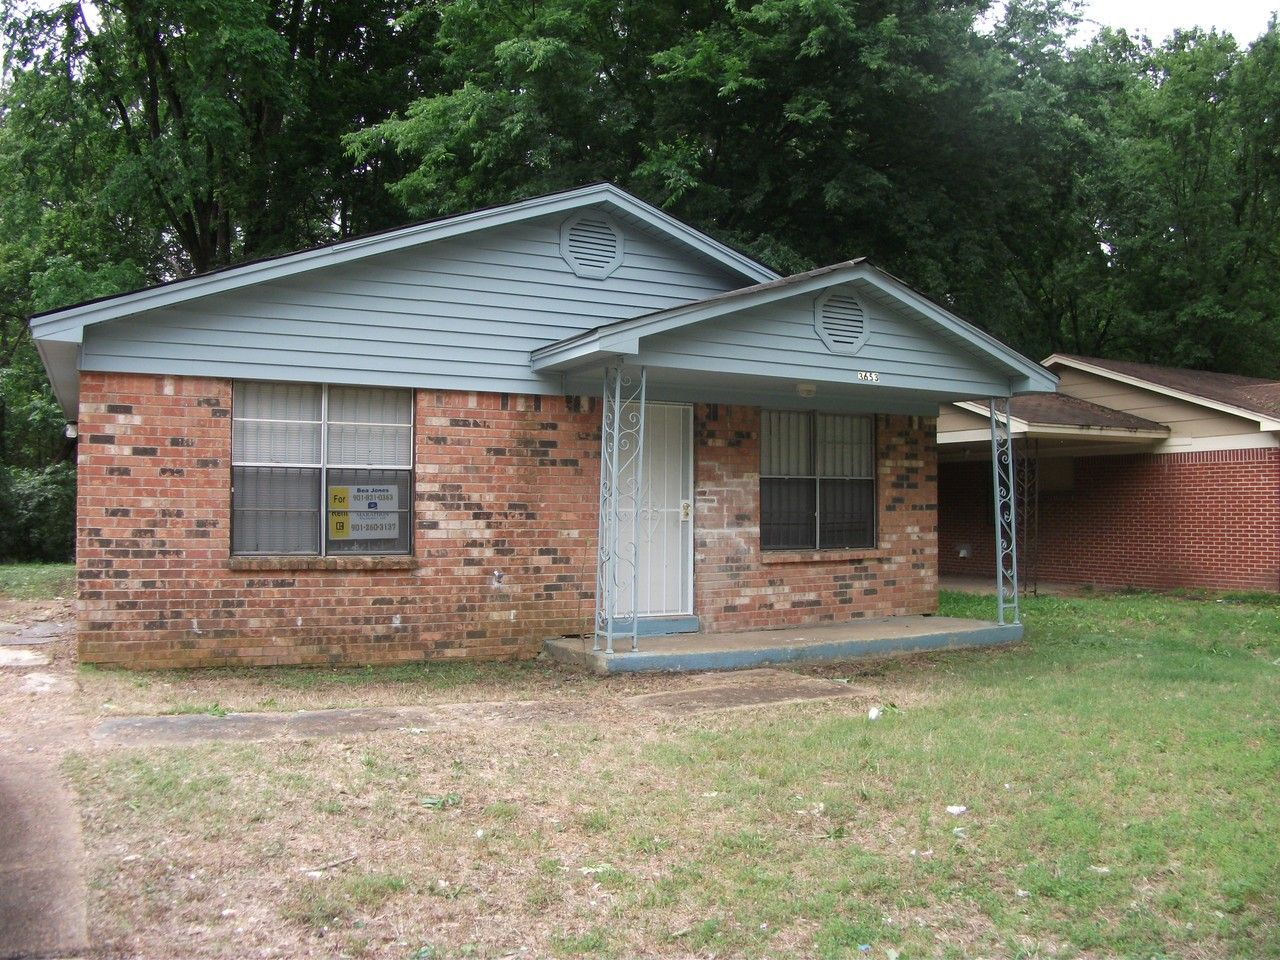 3653 royal wood dr memphis tn 38128 4 bedroom house for